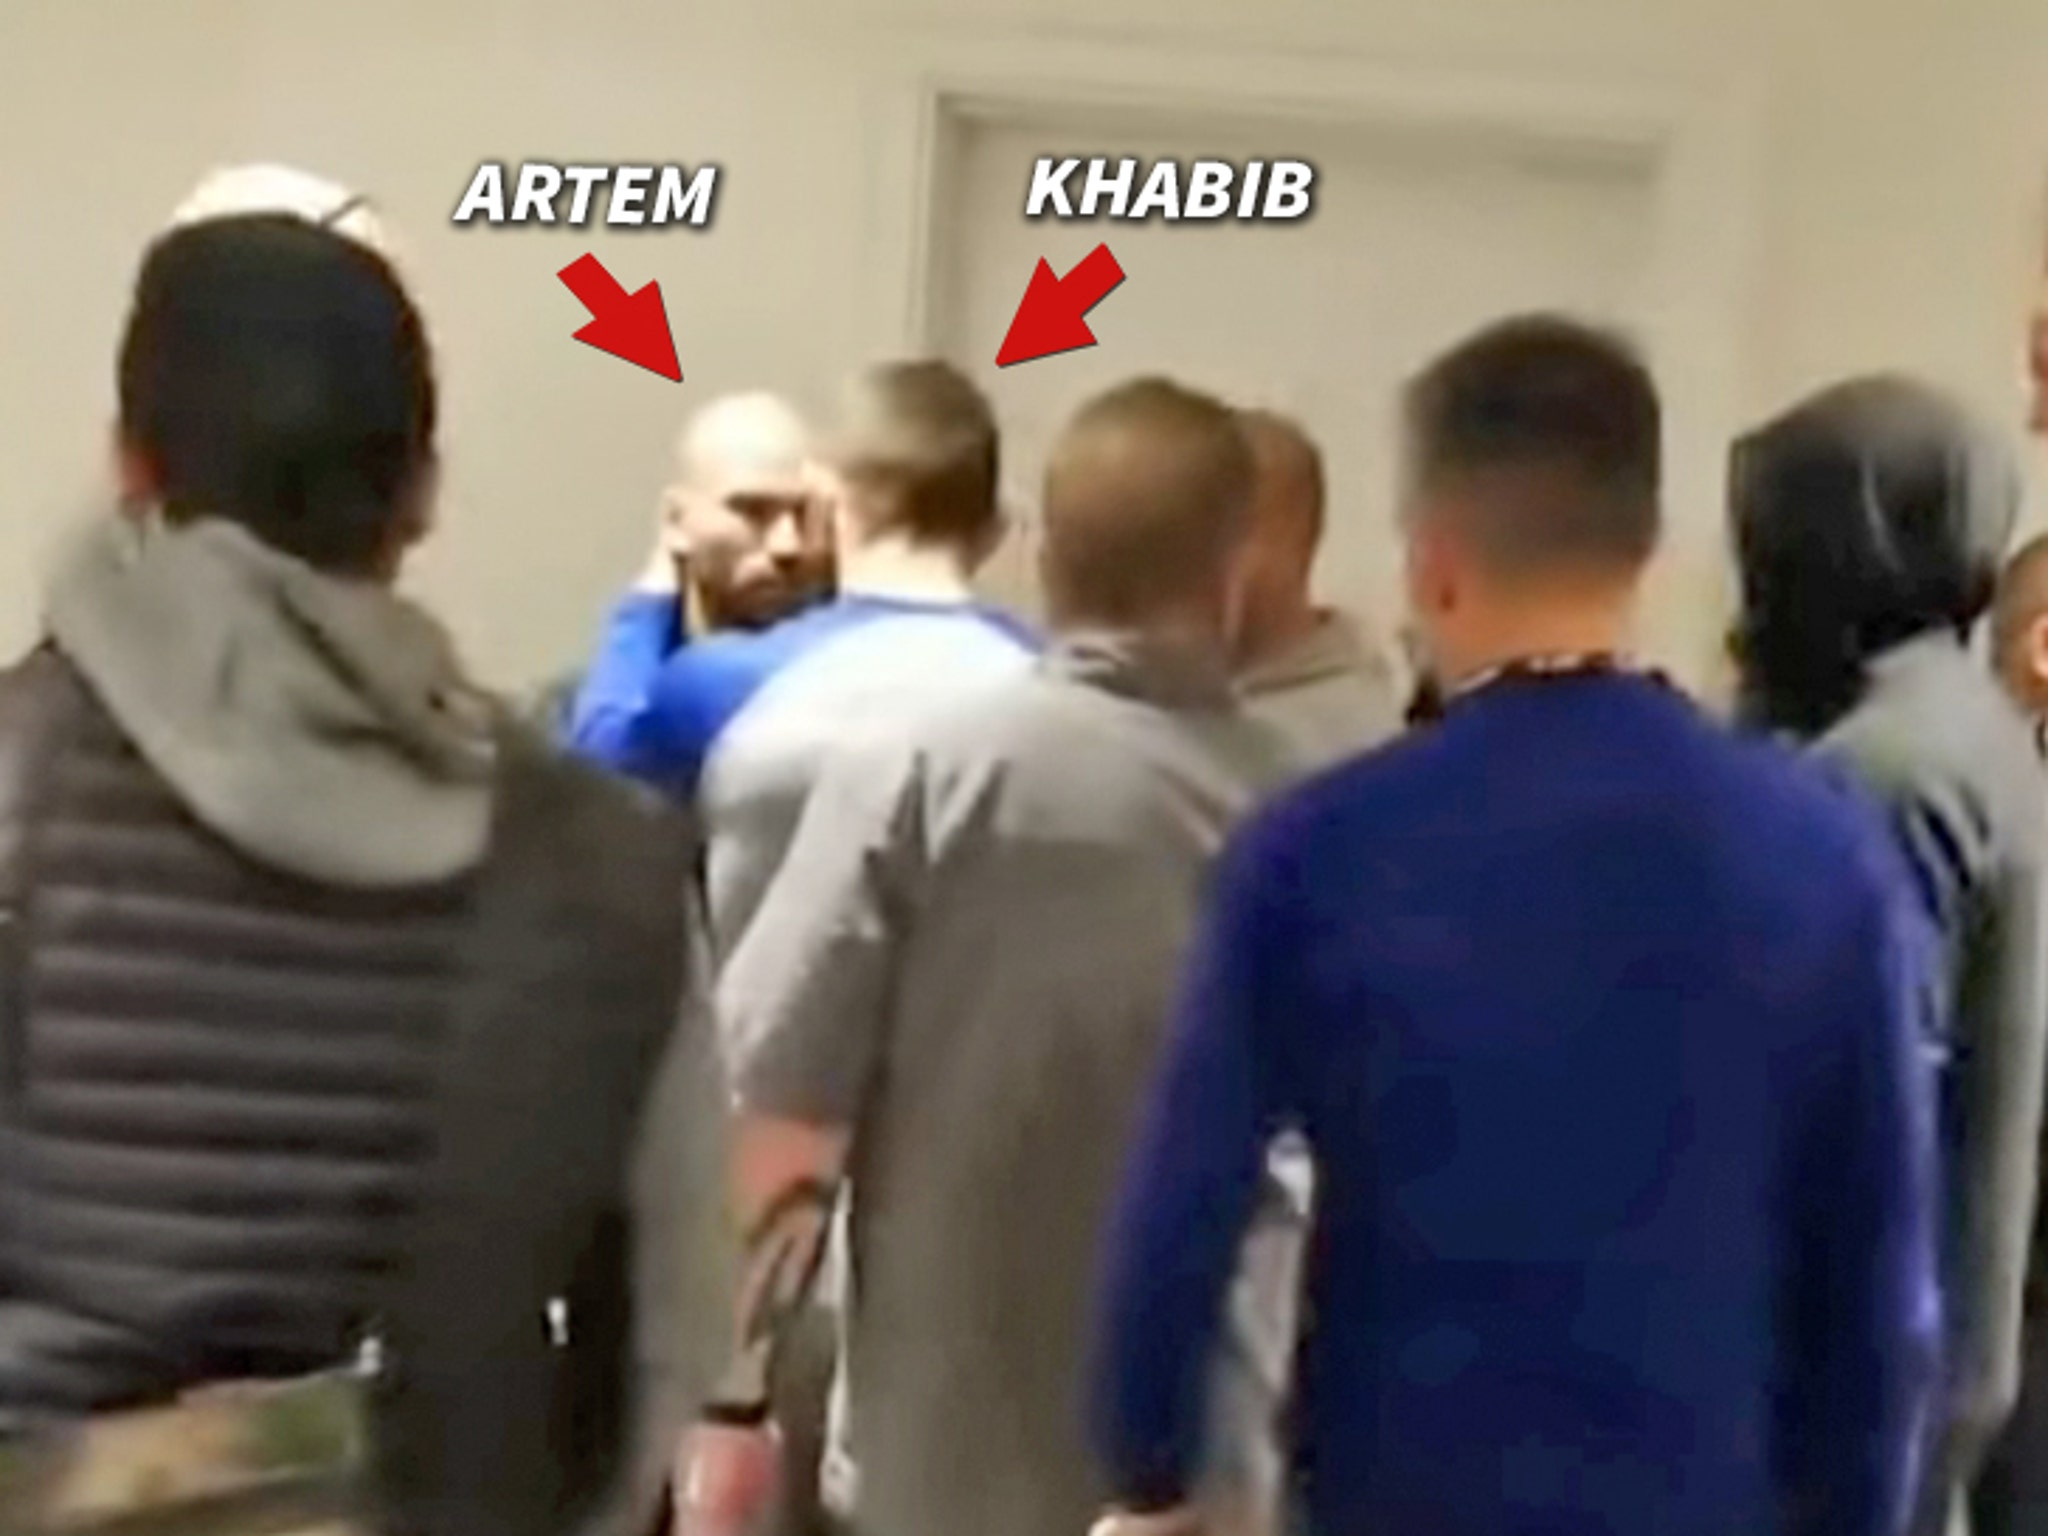 UFC's Khabib Nurmagomedov Confronts Conor McGregor's BFF in Heated